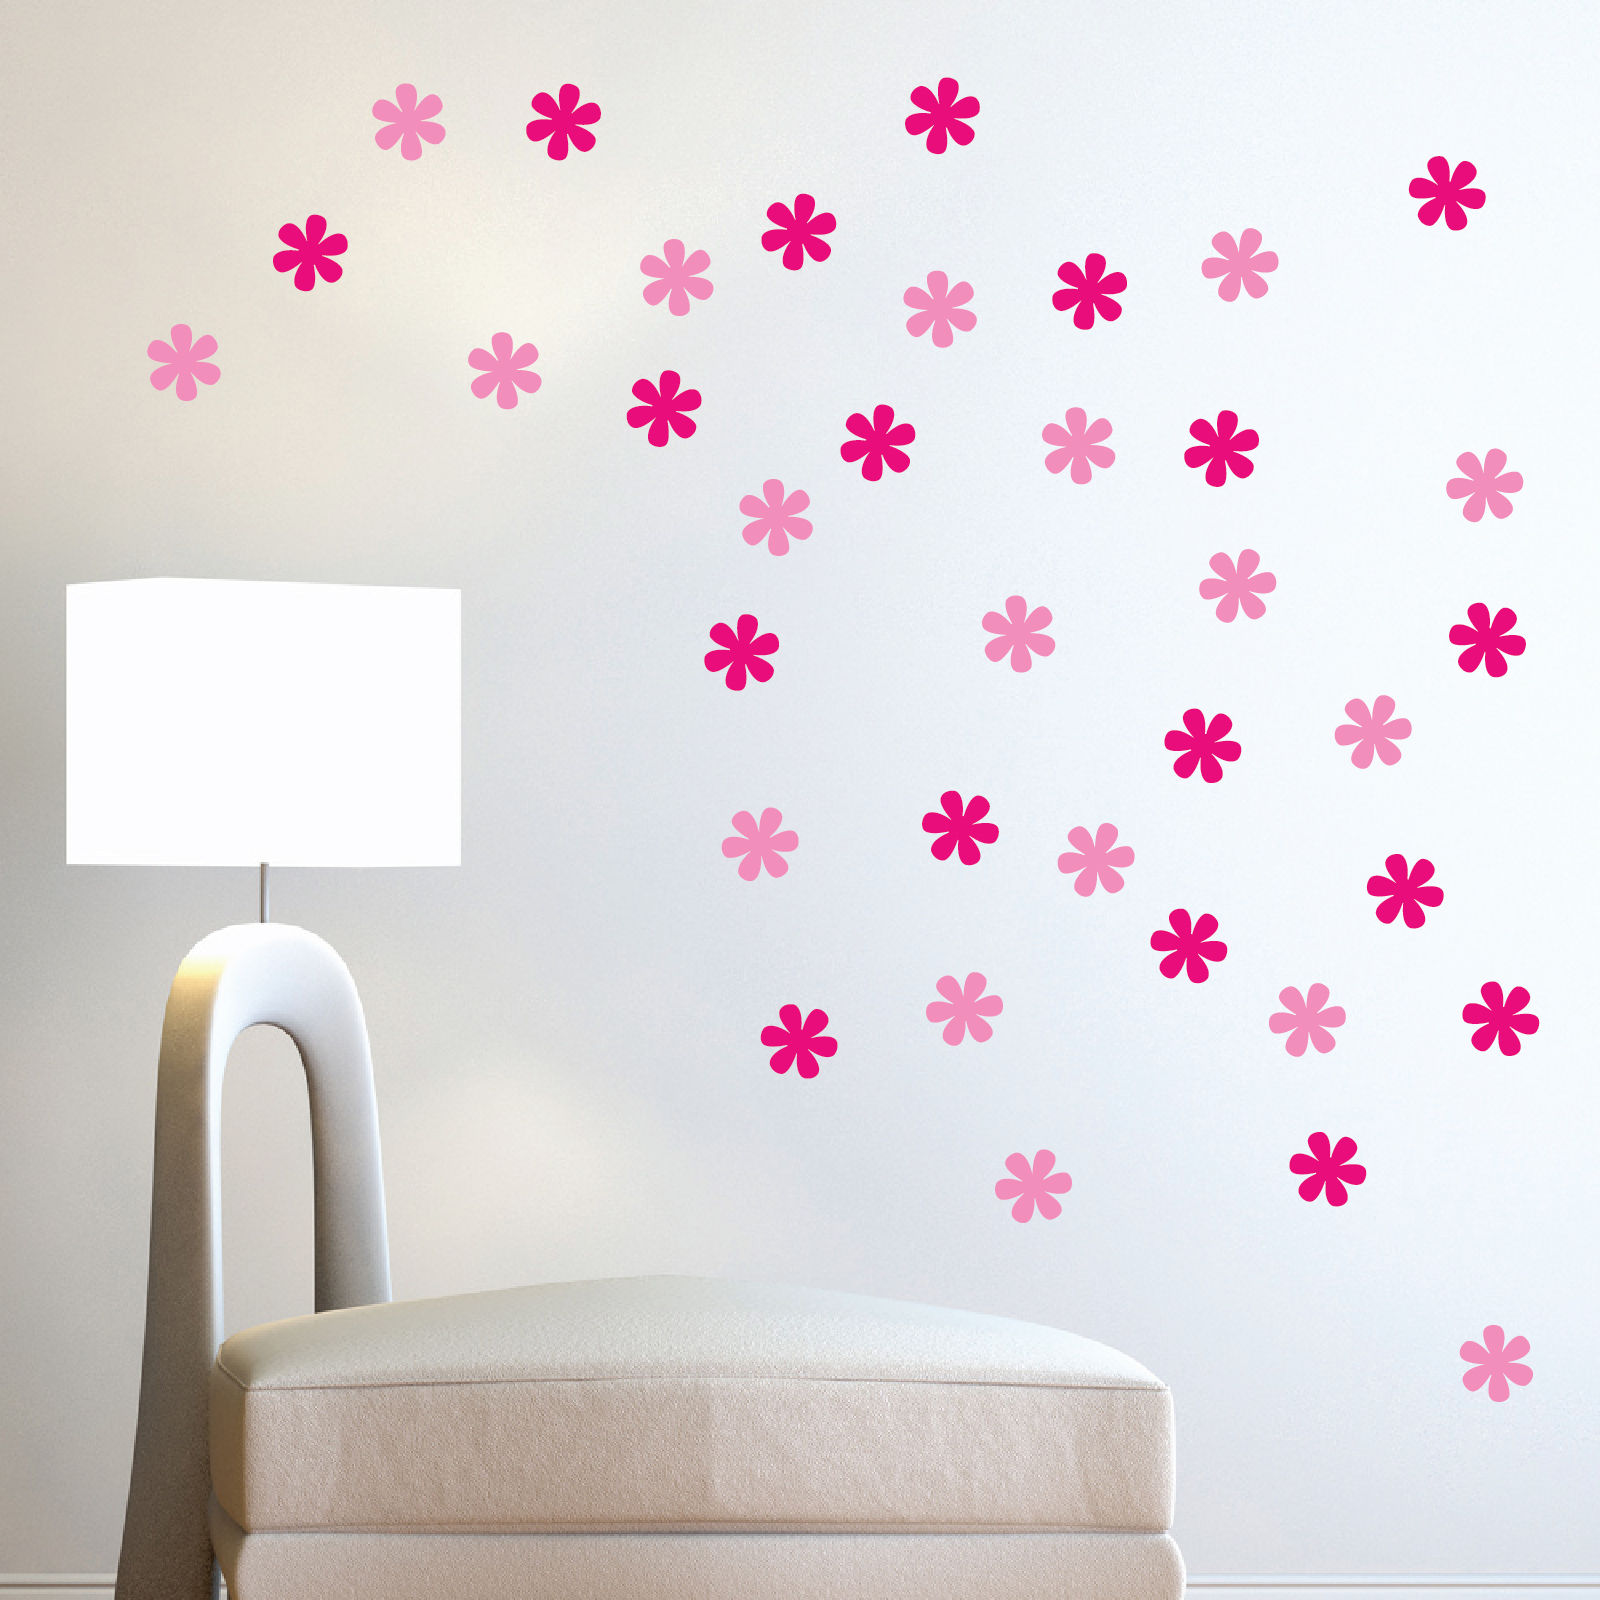 /buy 2 get 1 free/ set 24pcs removable Flower glue stickers for home Wall furniture door car decor(China (Mainland))